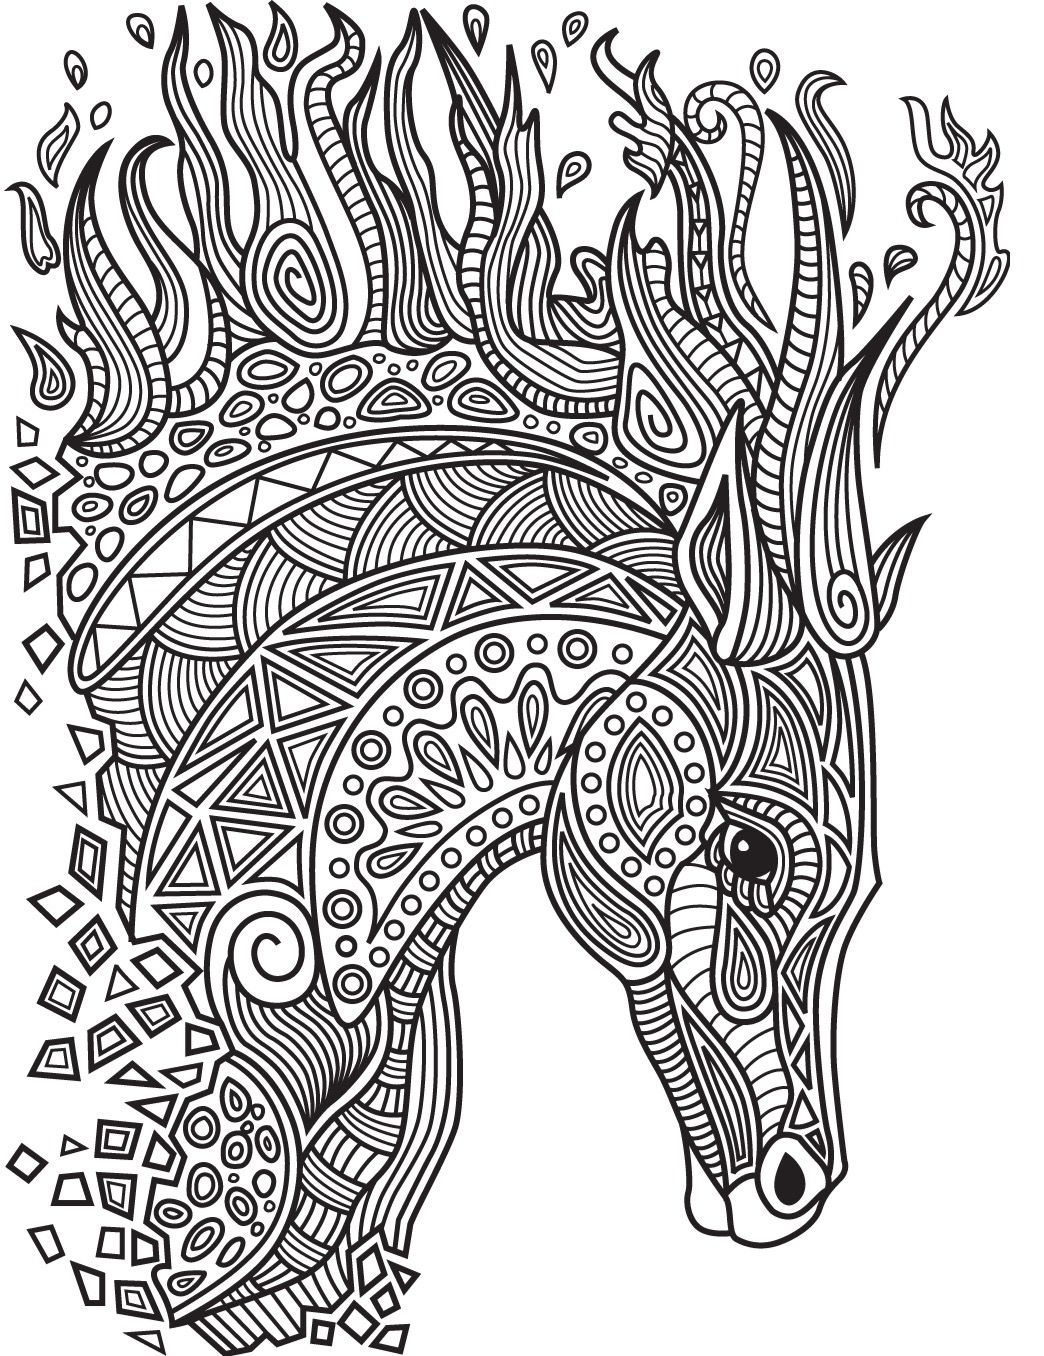 Ausmalbilder Pferd Mandala : Horses Colorish Coloring Book App For Adults Mandala Relax By